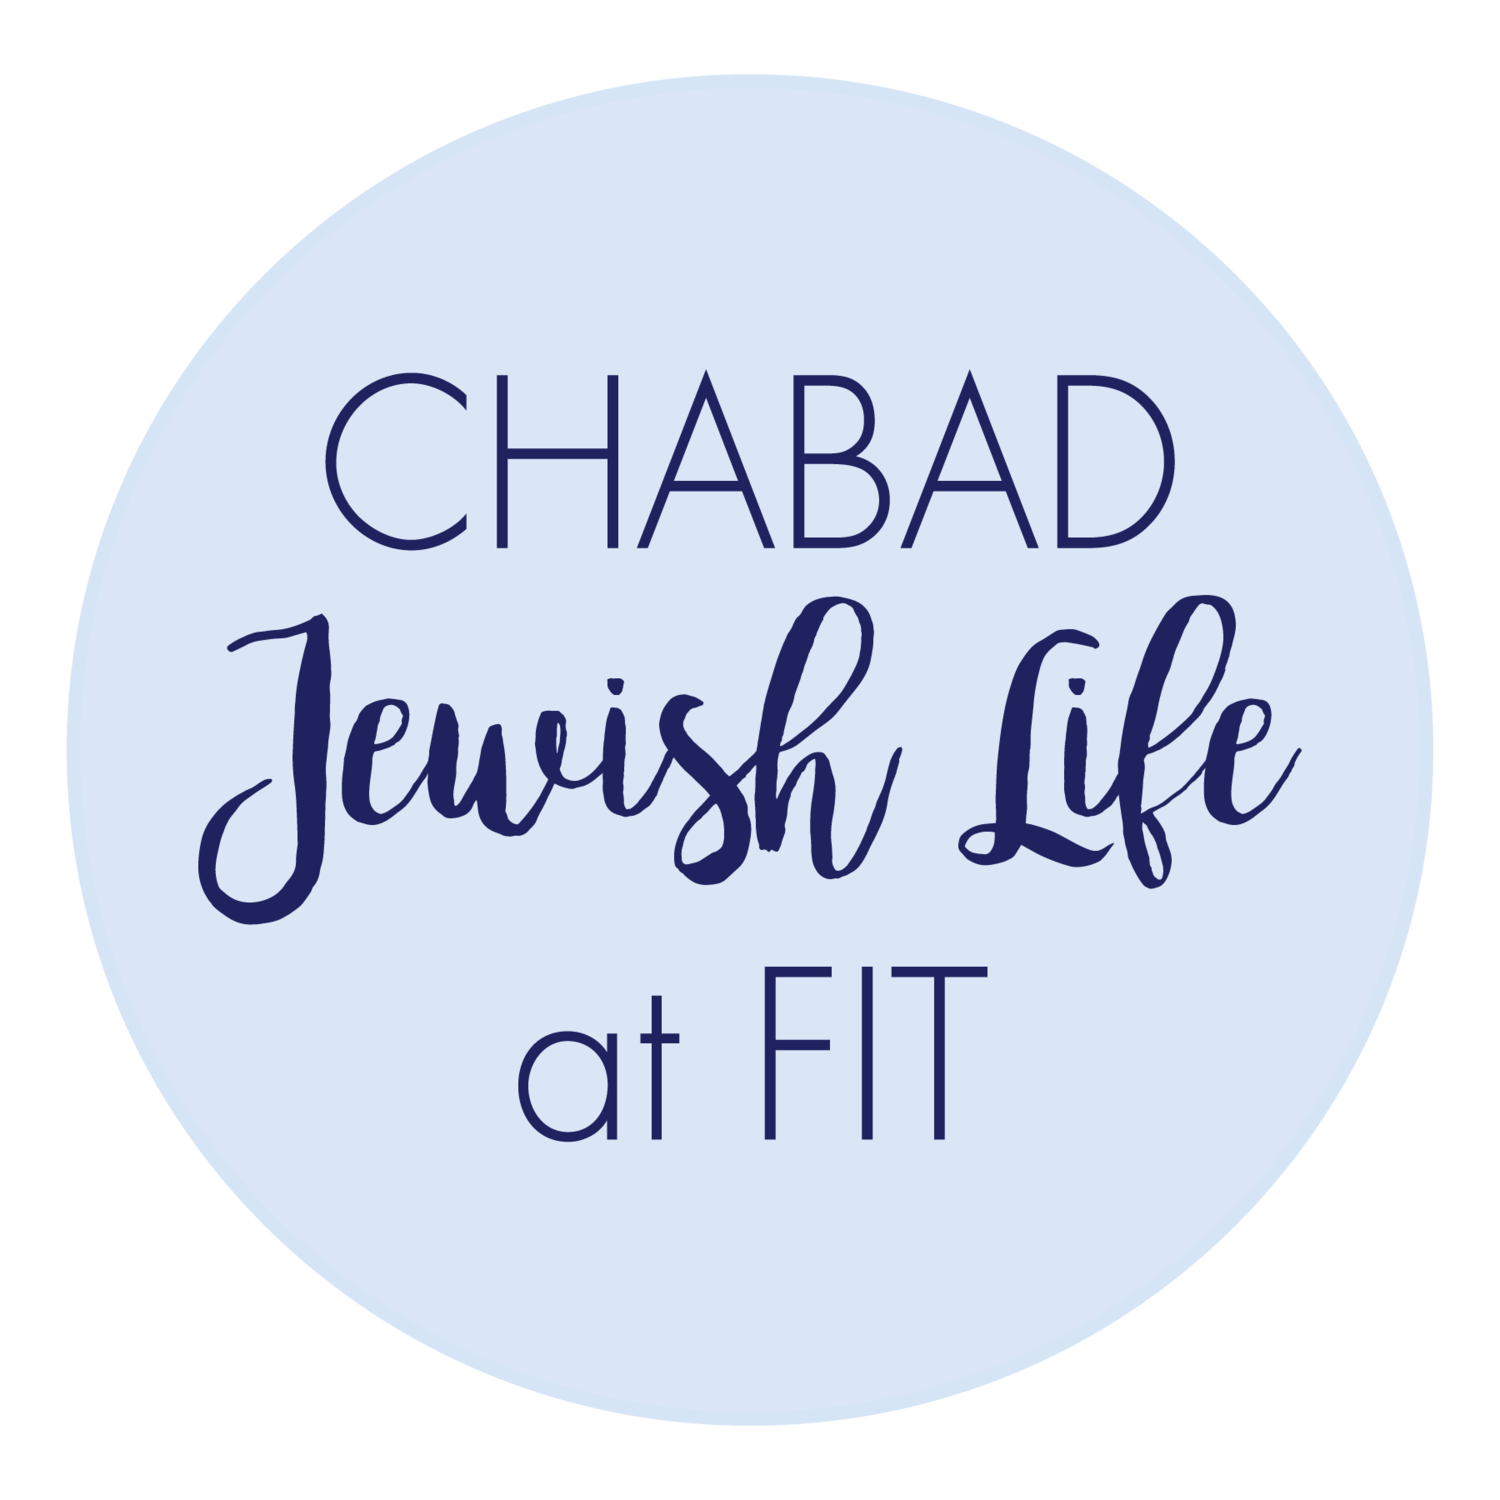 Chabad Jewish Life at FIT